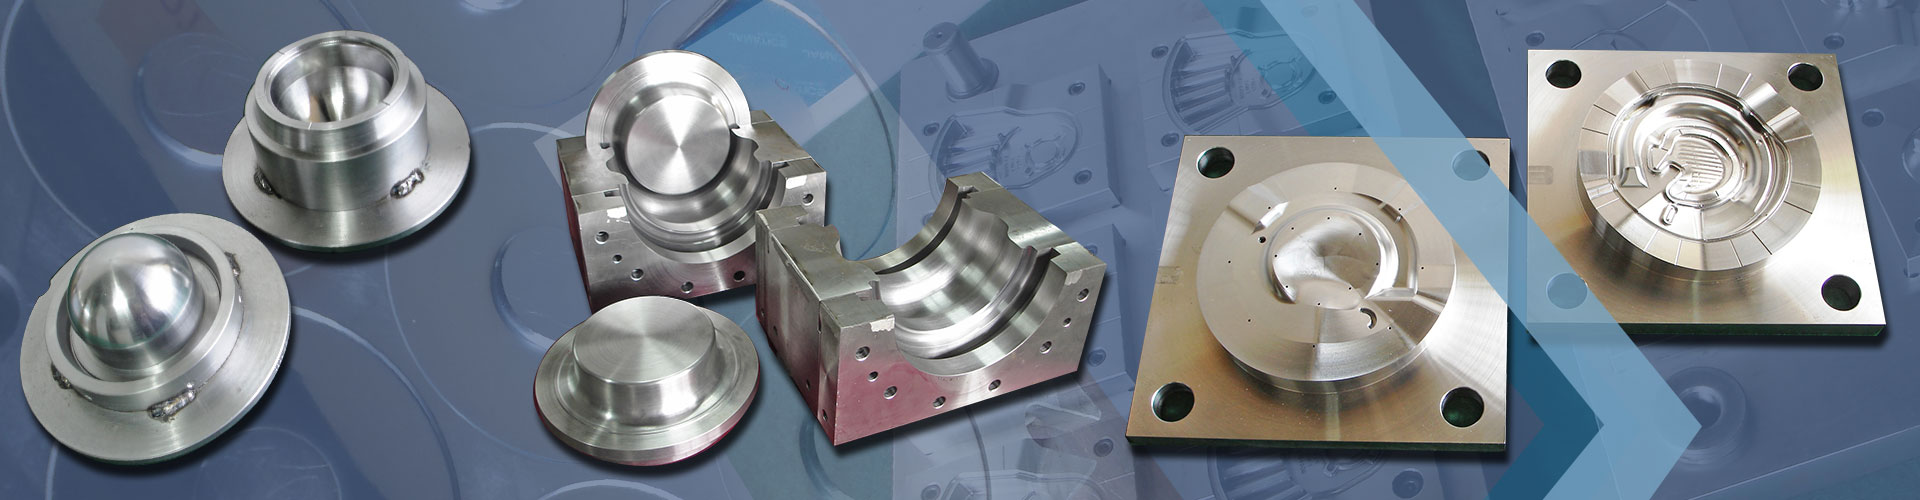 RUBBER INJECTION, TRANSFER AND COMPRESSION MOLDS